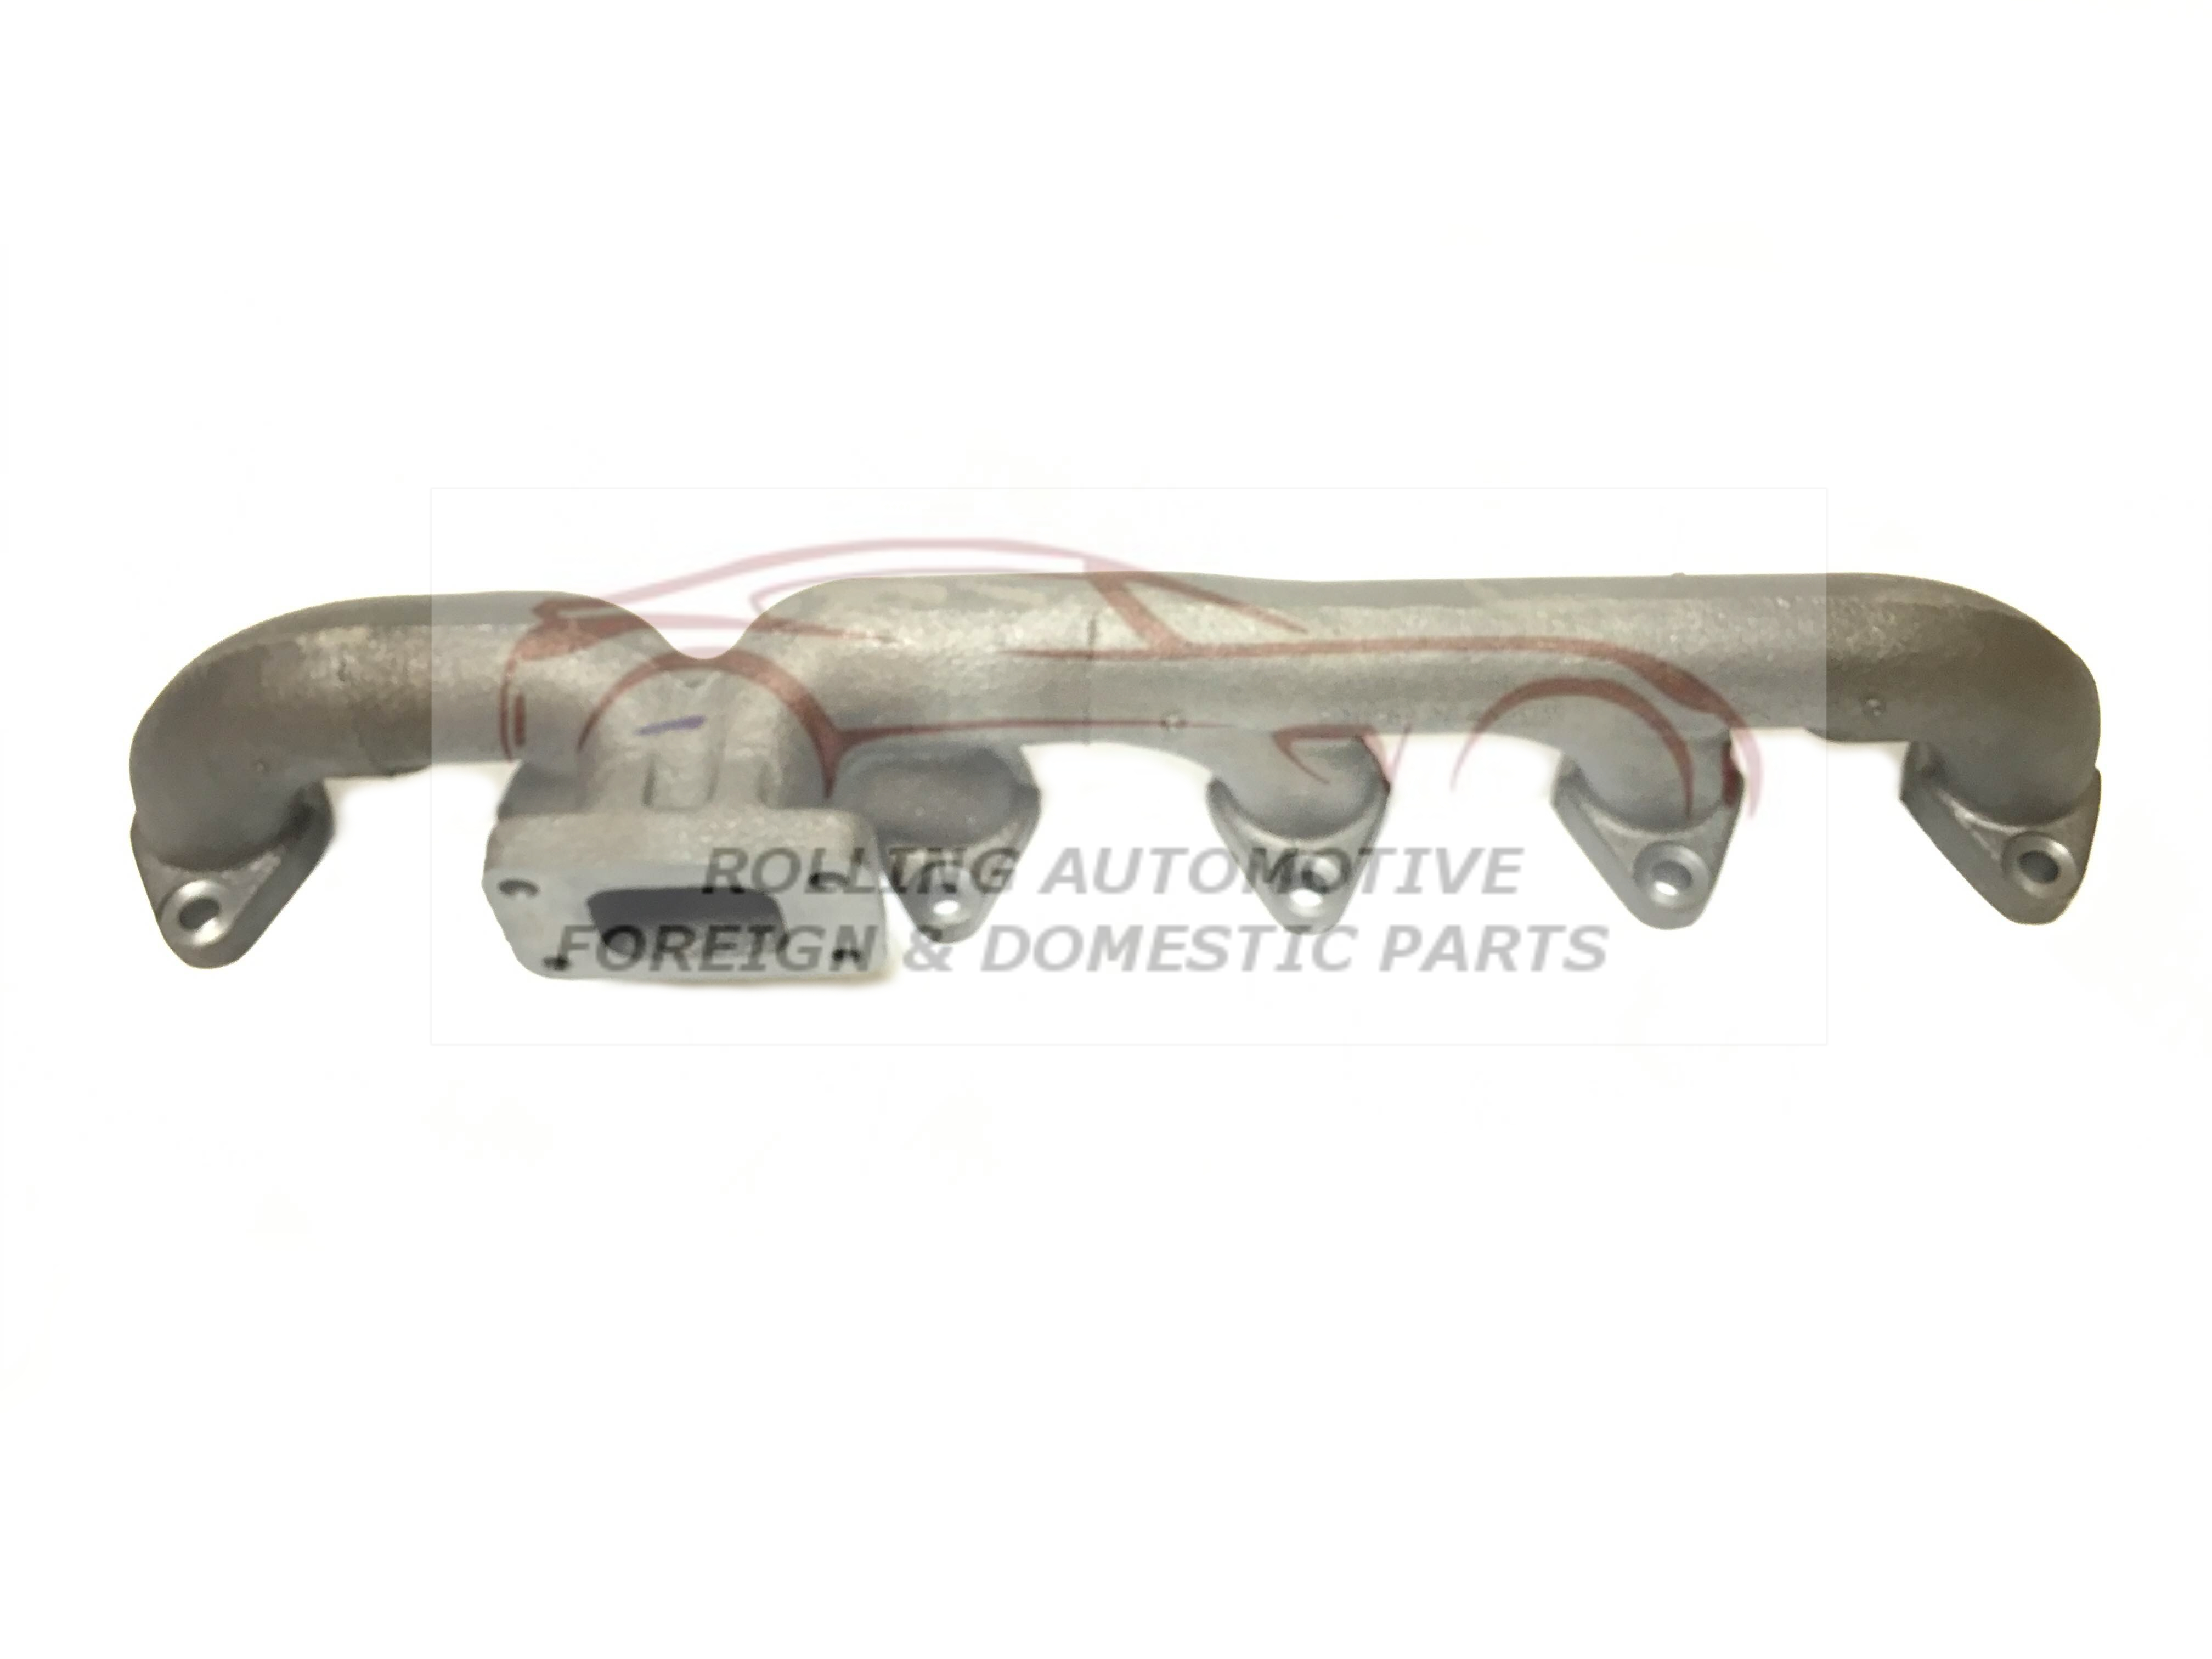 5 9L Diesel Fits Cummins Dodge Ram 2500 3500 Exhaust Manifold 03 04 05 06  07 New